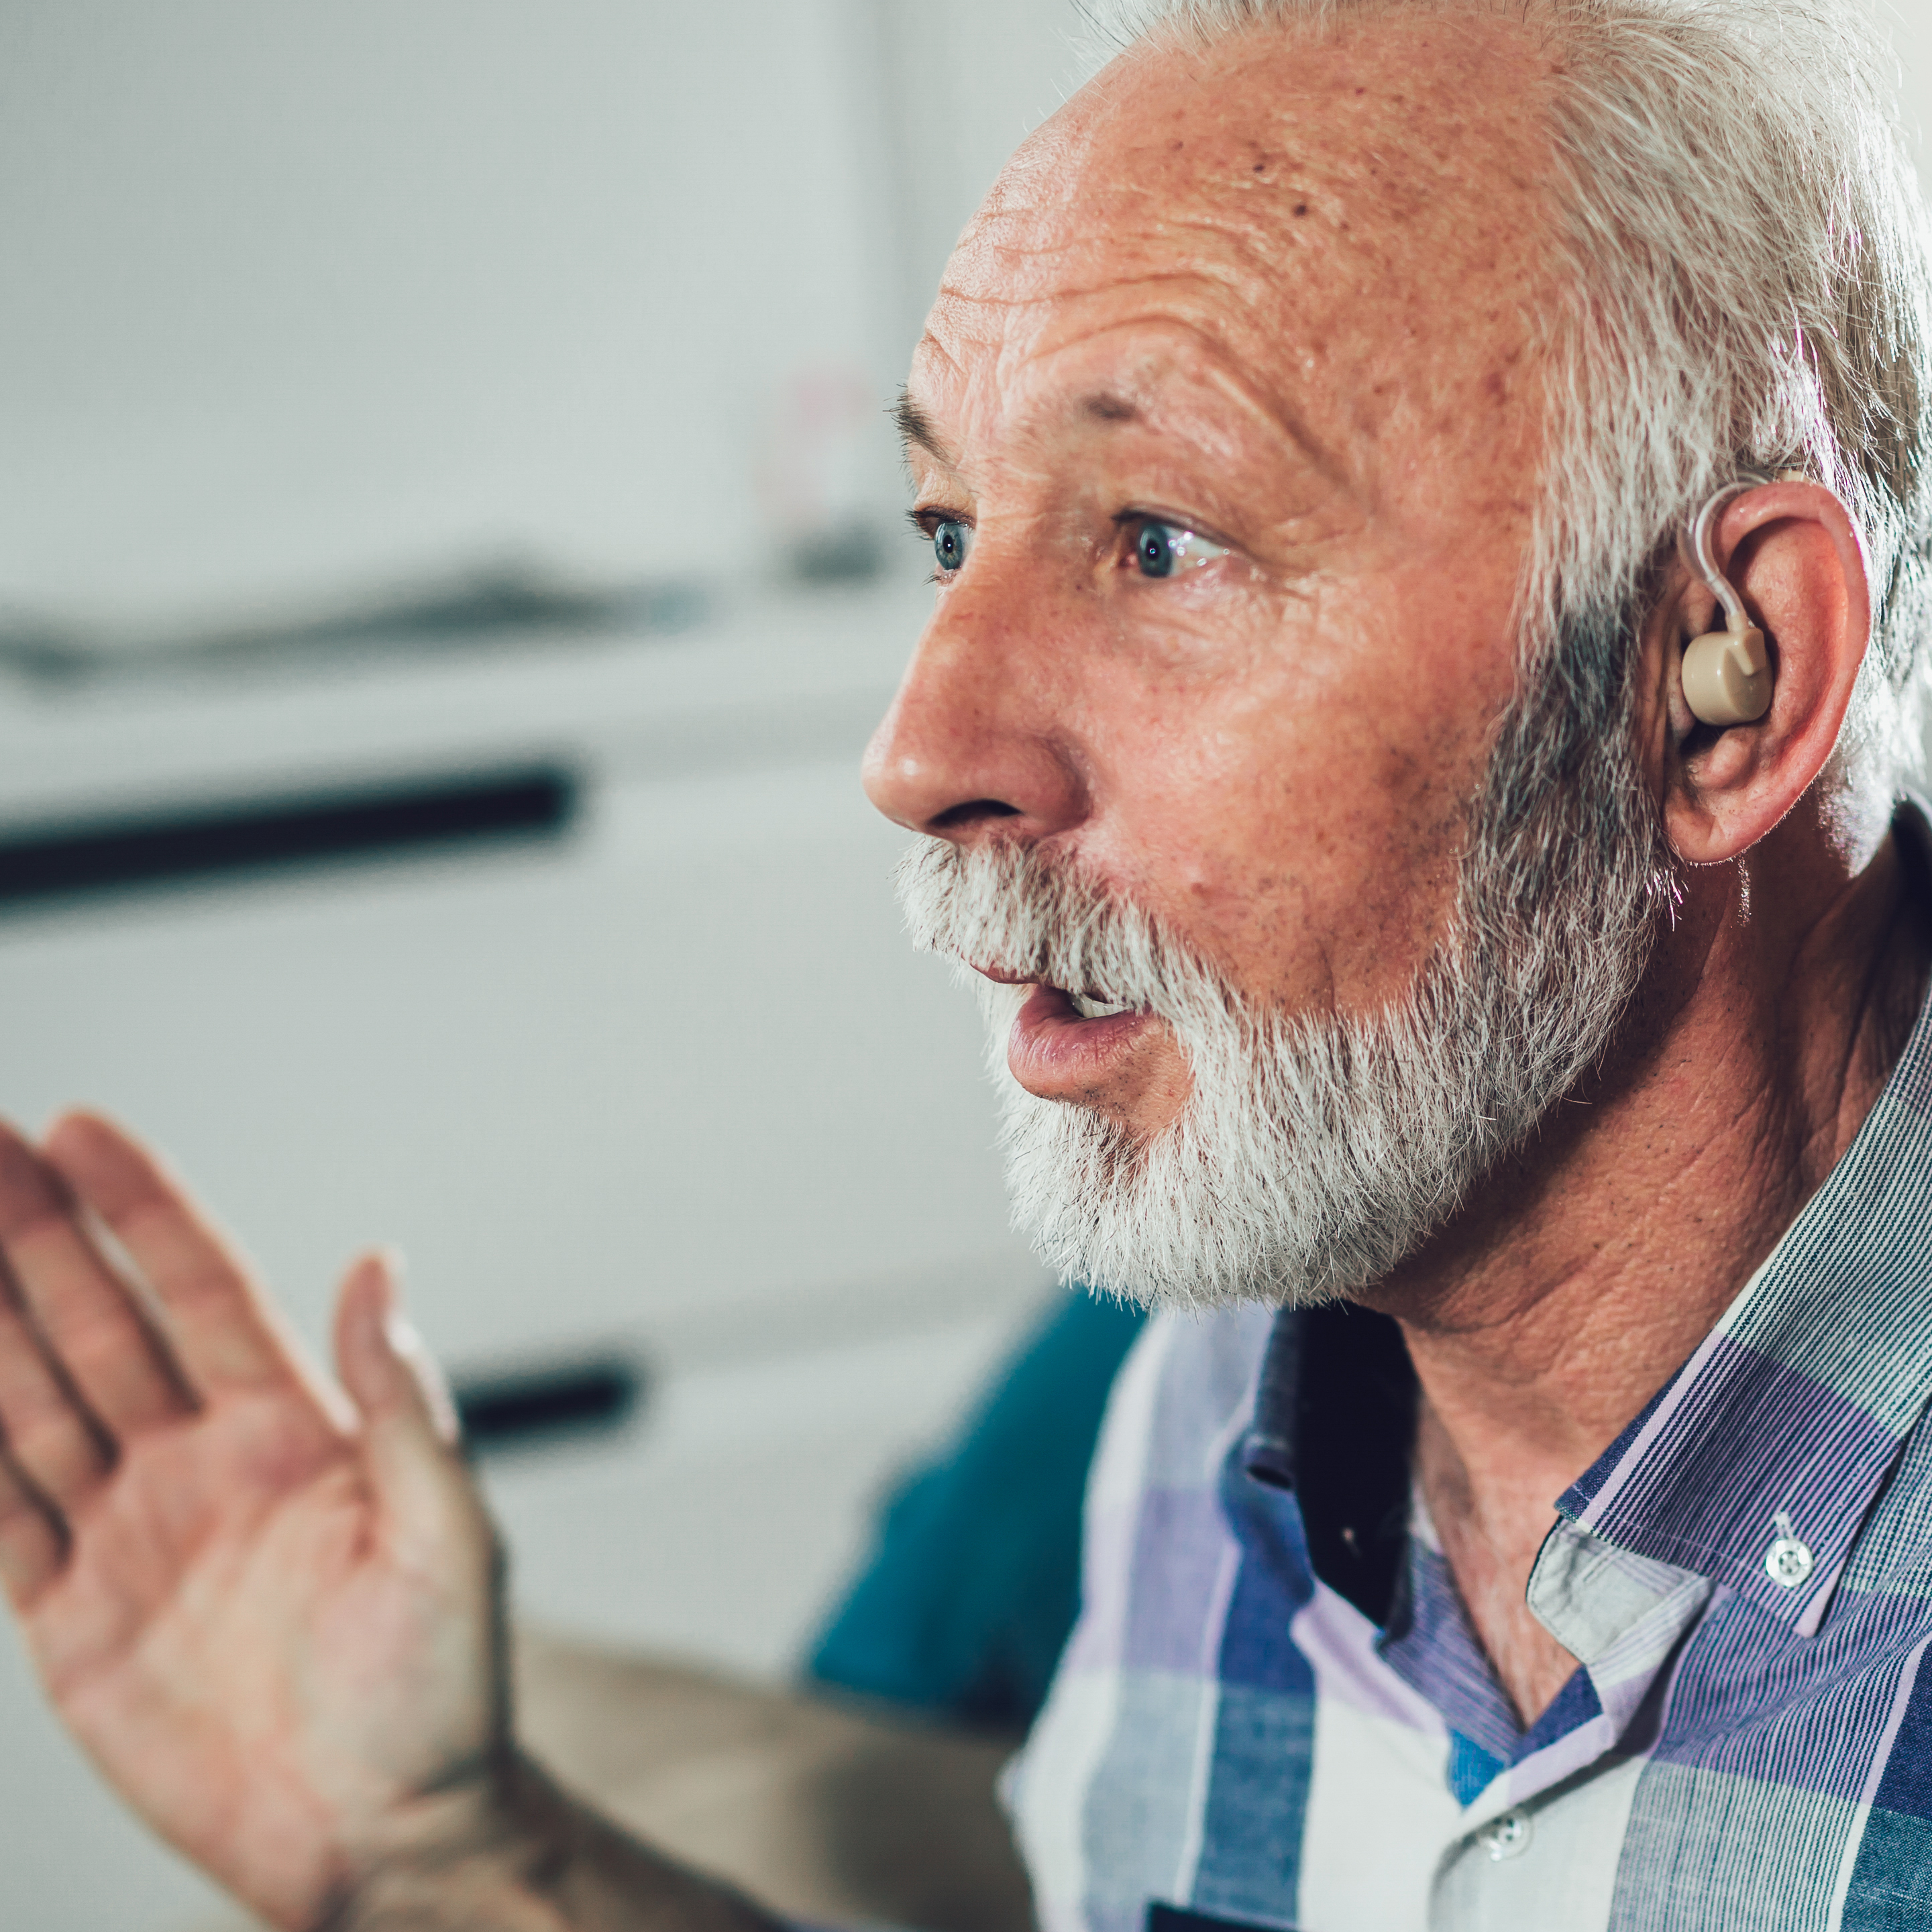 A man looks surprised at the difference a hearing aid can make.